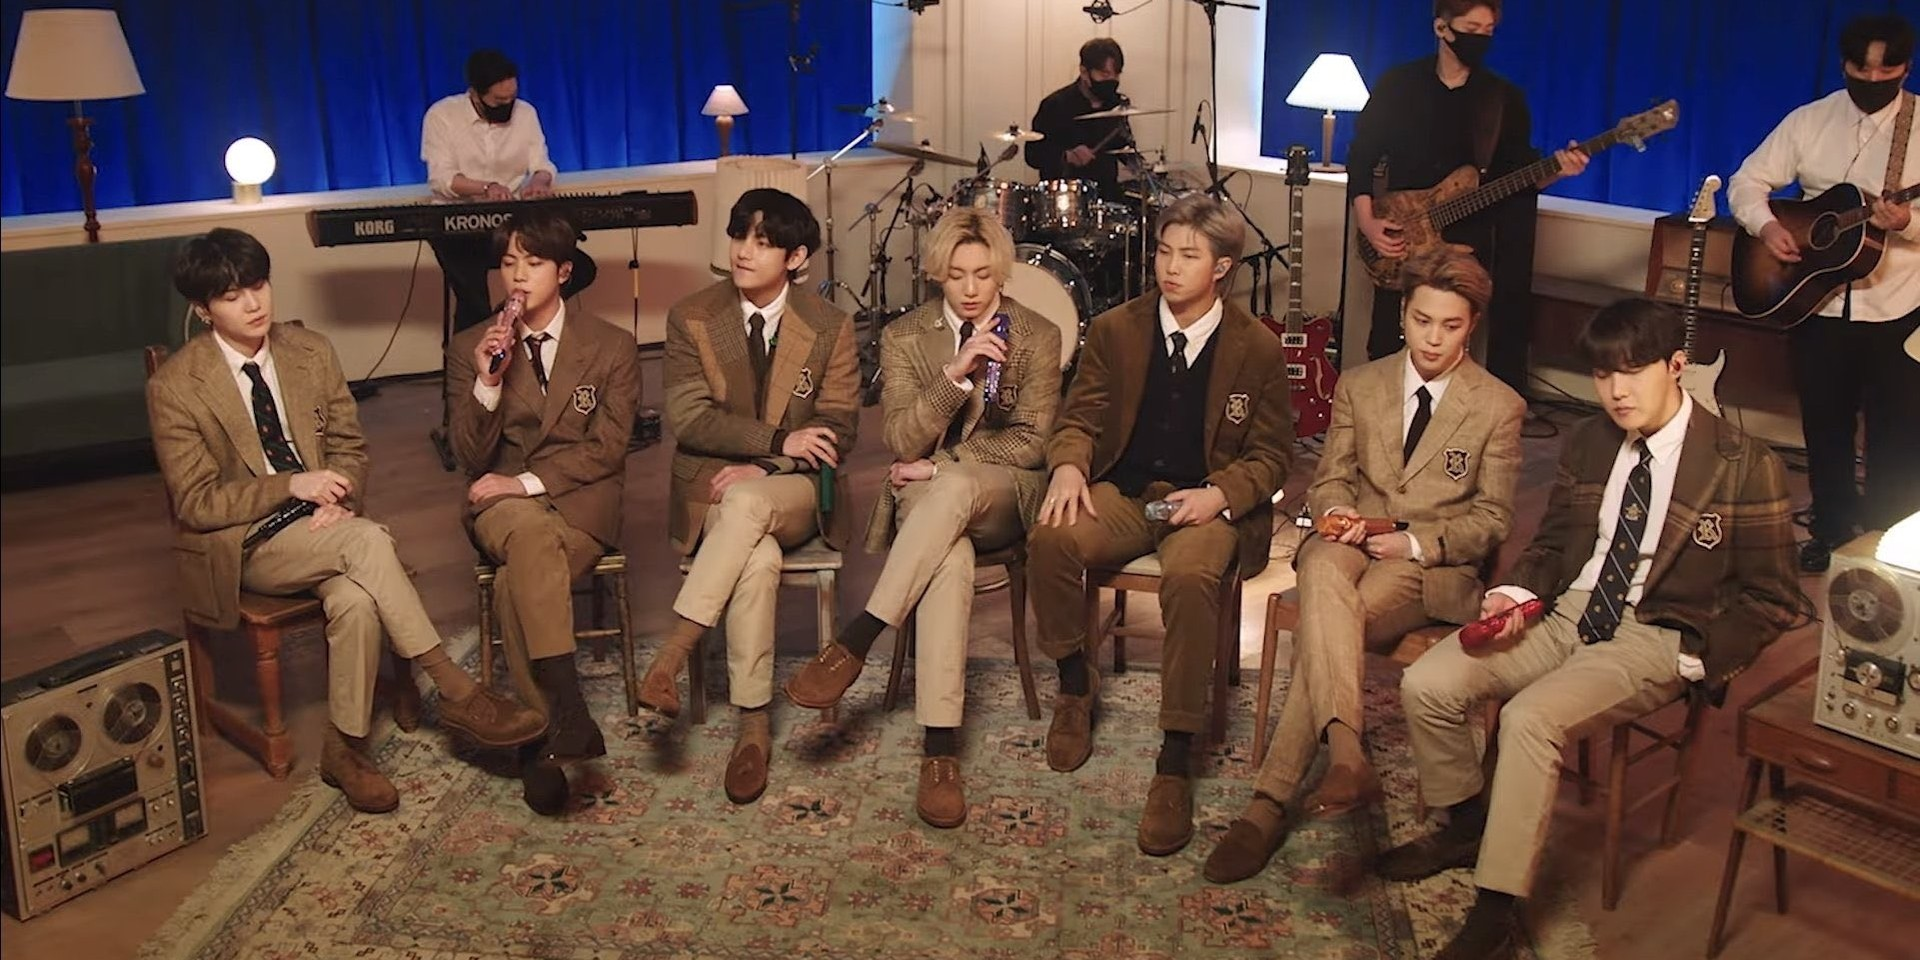 BTS to perform on iconic MTV Unplugged stage in global music special